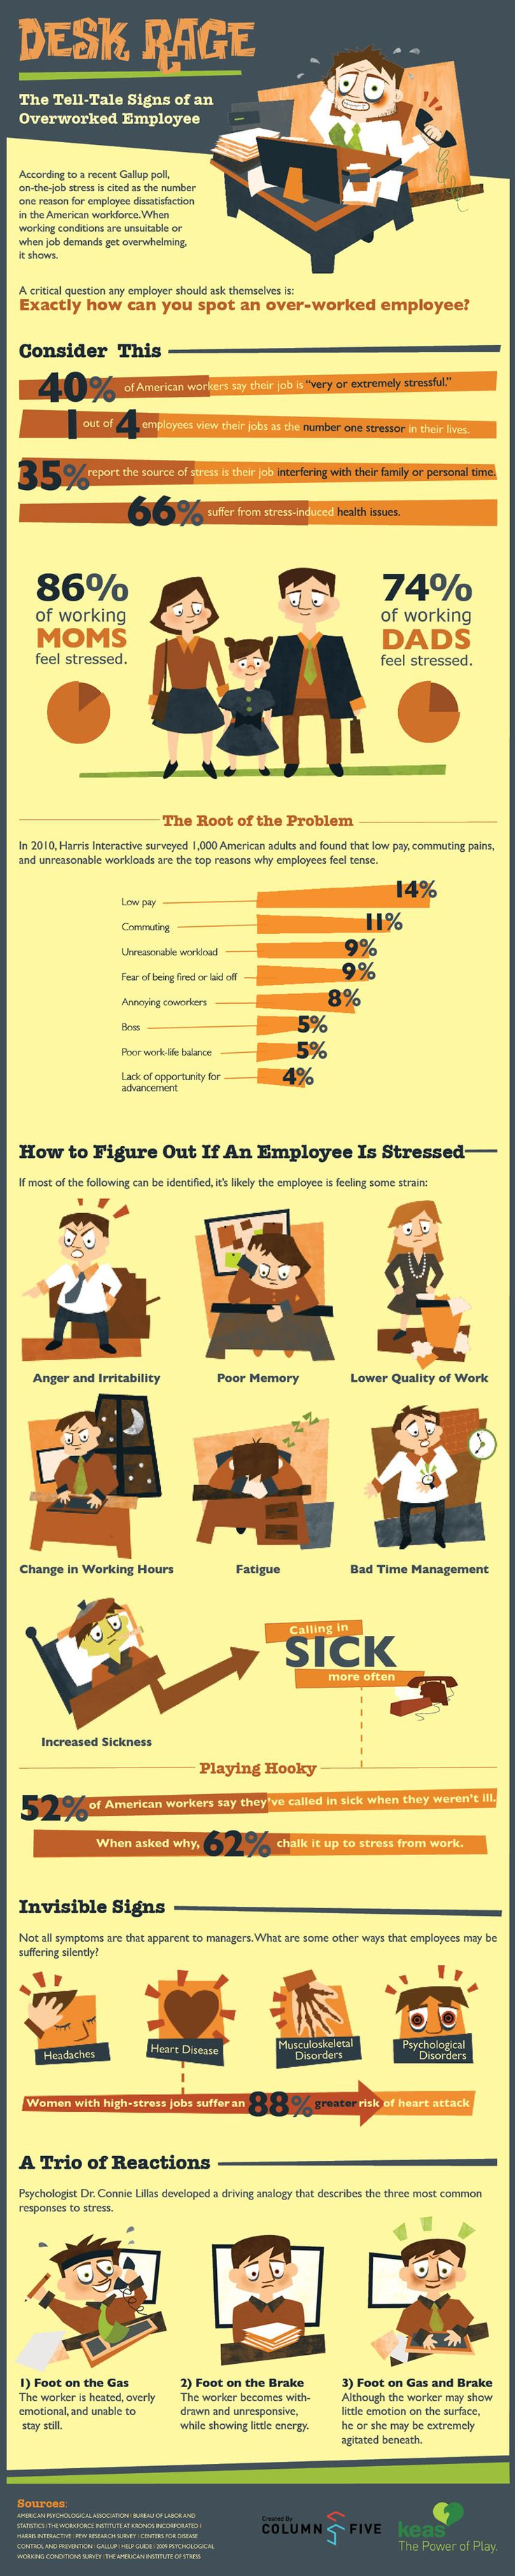 The tell-tale signs of an overworked employee